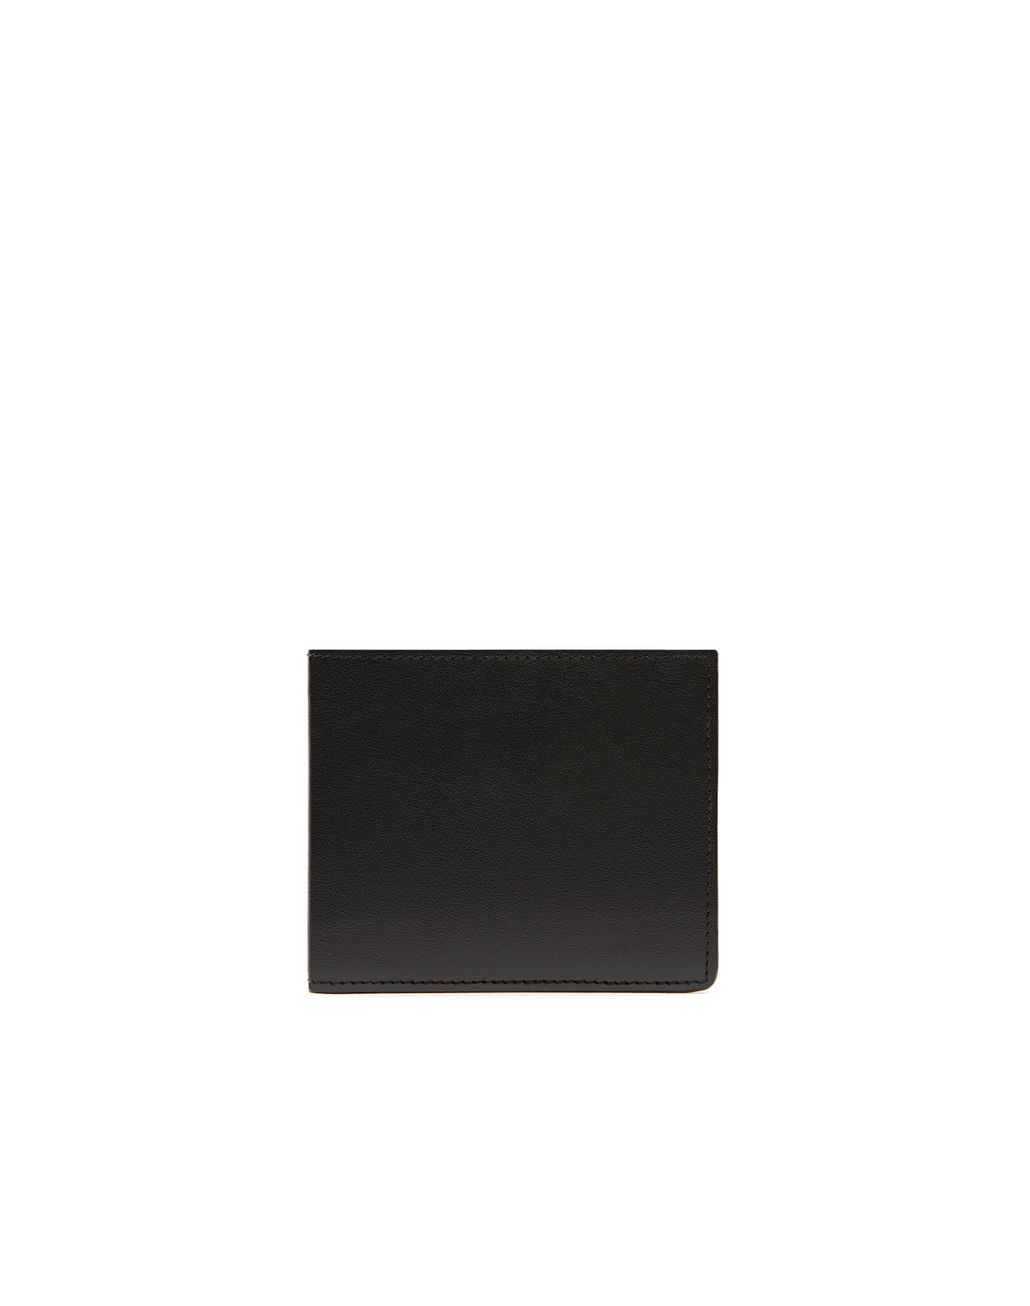 BRIONI Black Slim Wallet Leather Goods Man f